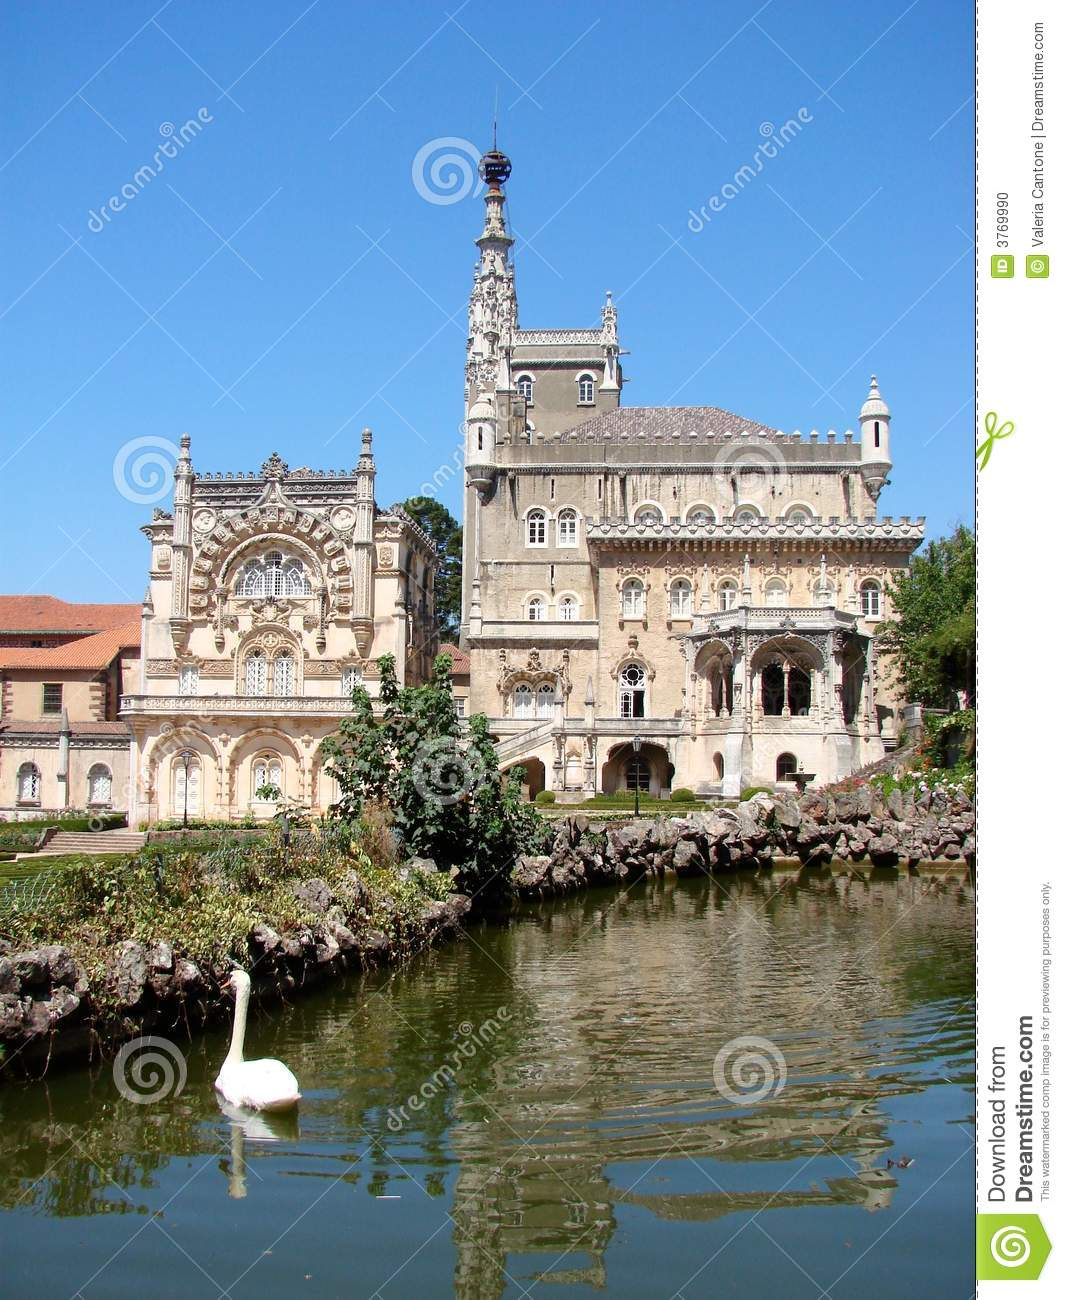 The Bussaco Palace, Portugal Stock Photo.